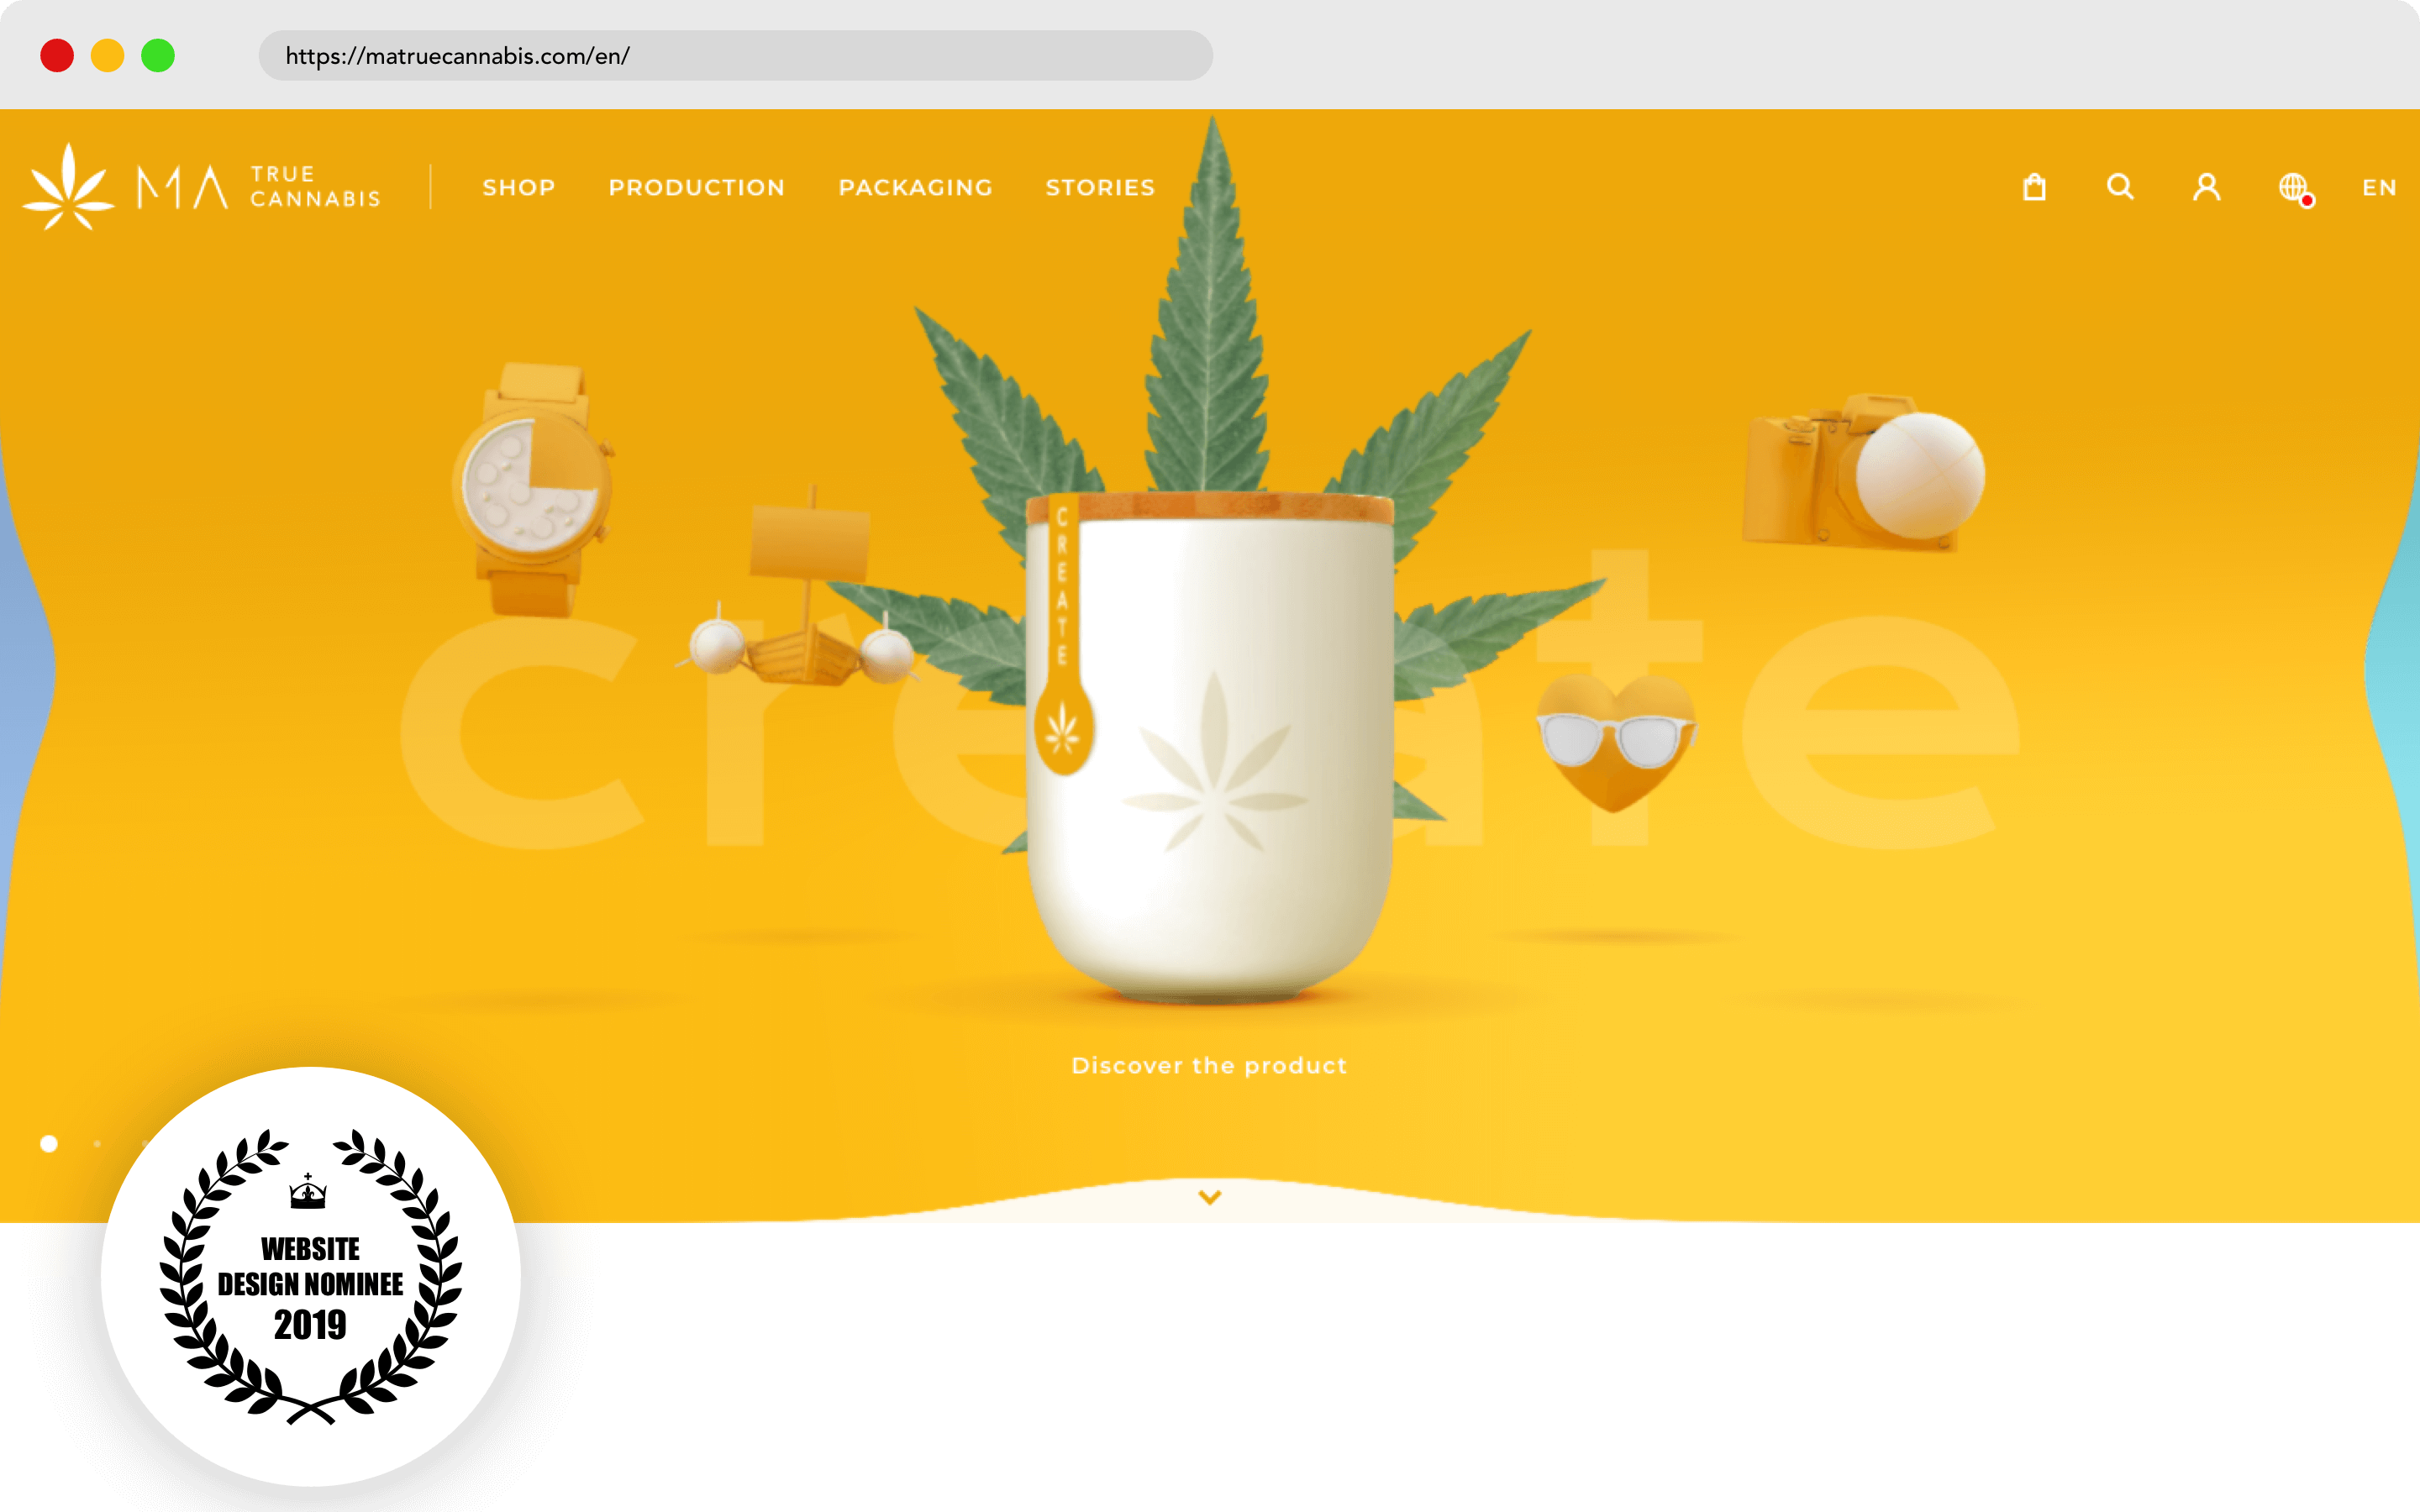 Matruecannabis Website Design